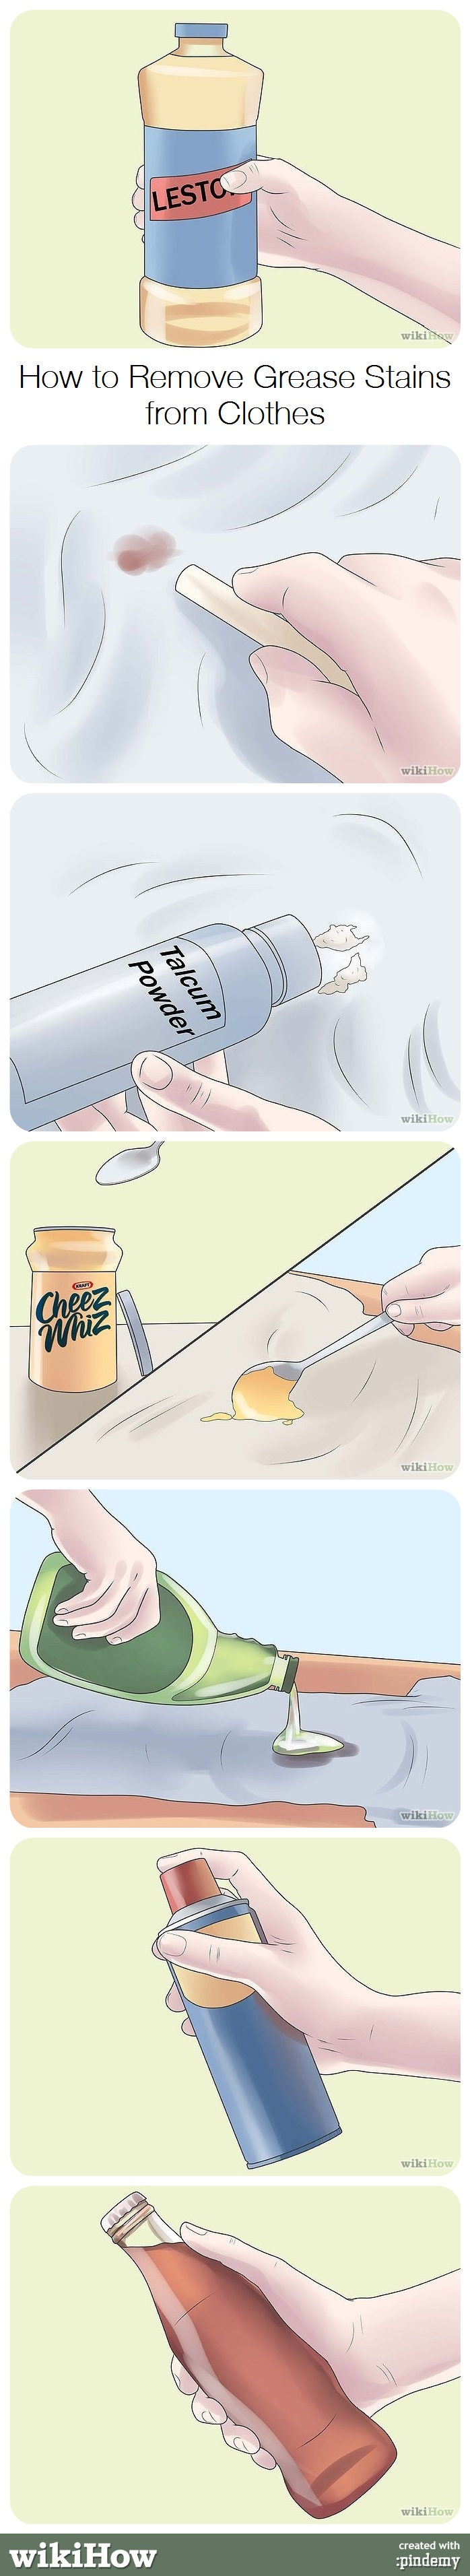 how to get grease stains out